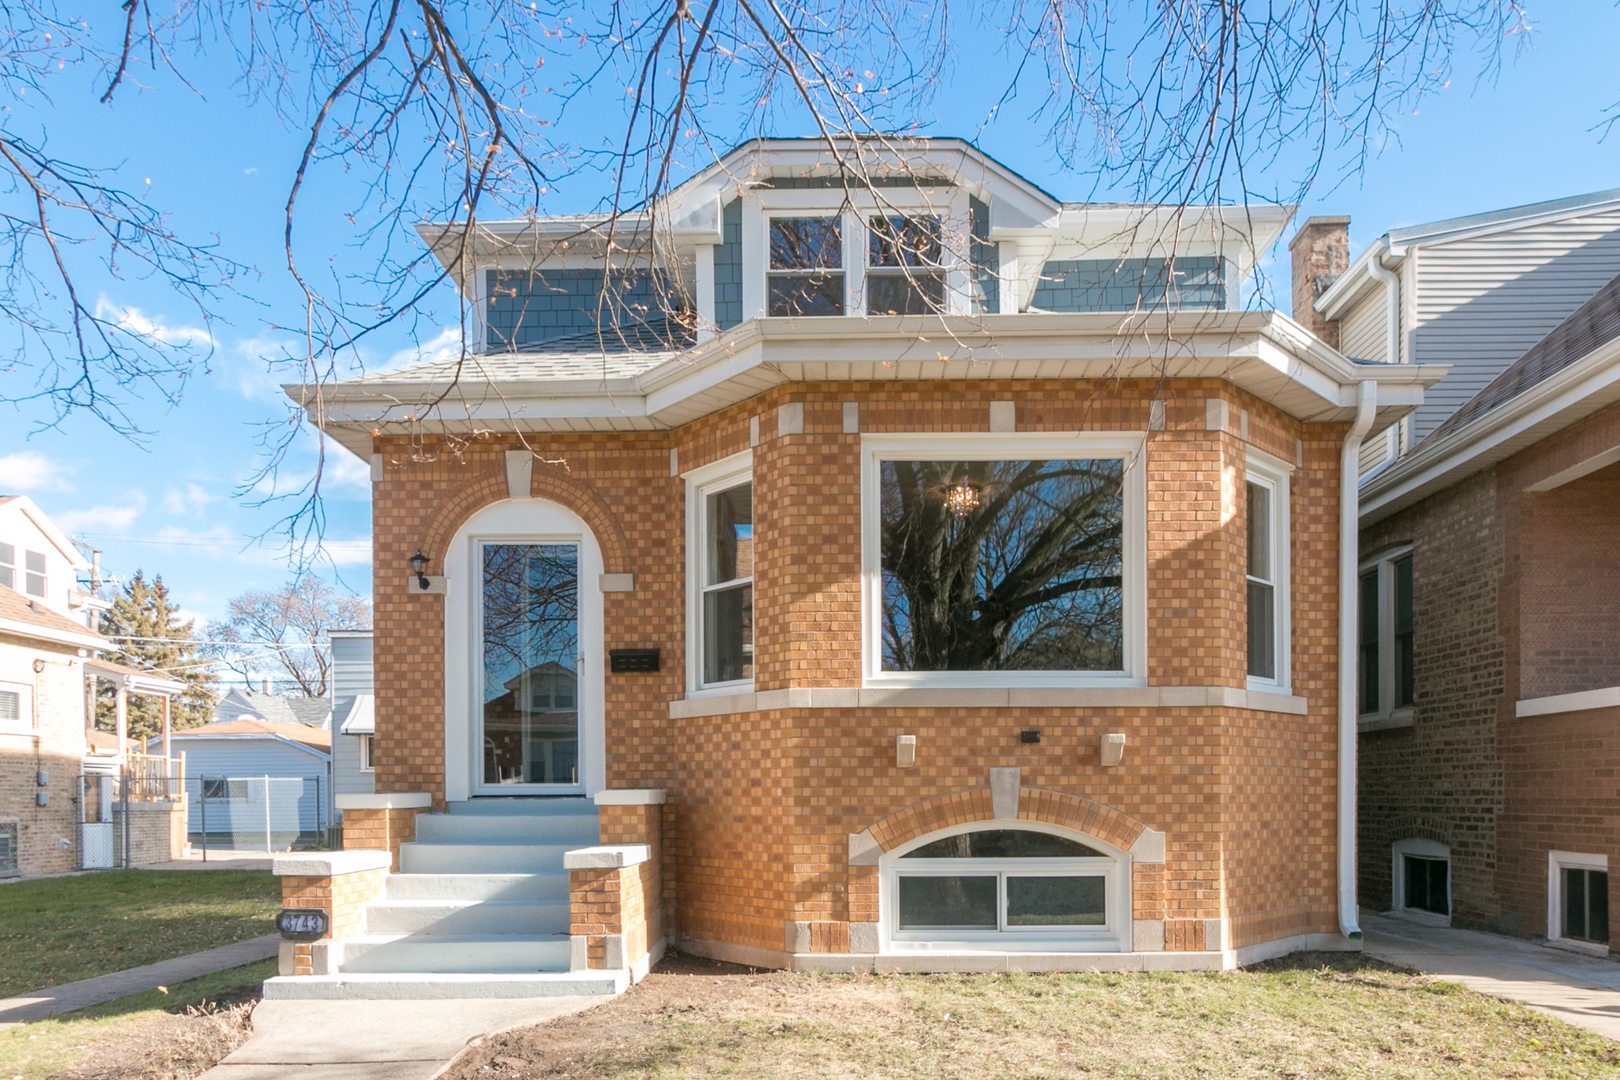 3743 NORTH NEW ENGLAND AVENUE, CHICAGO, IL 60634